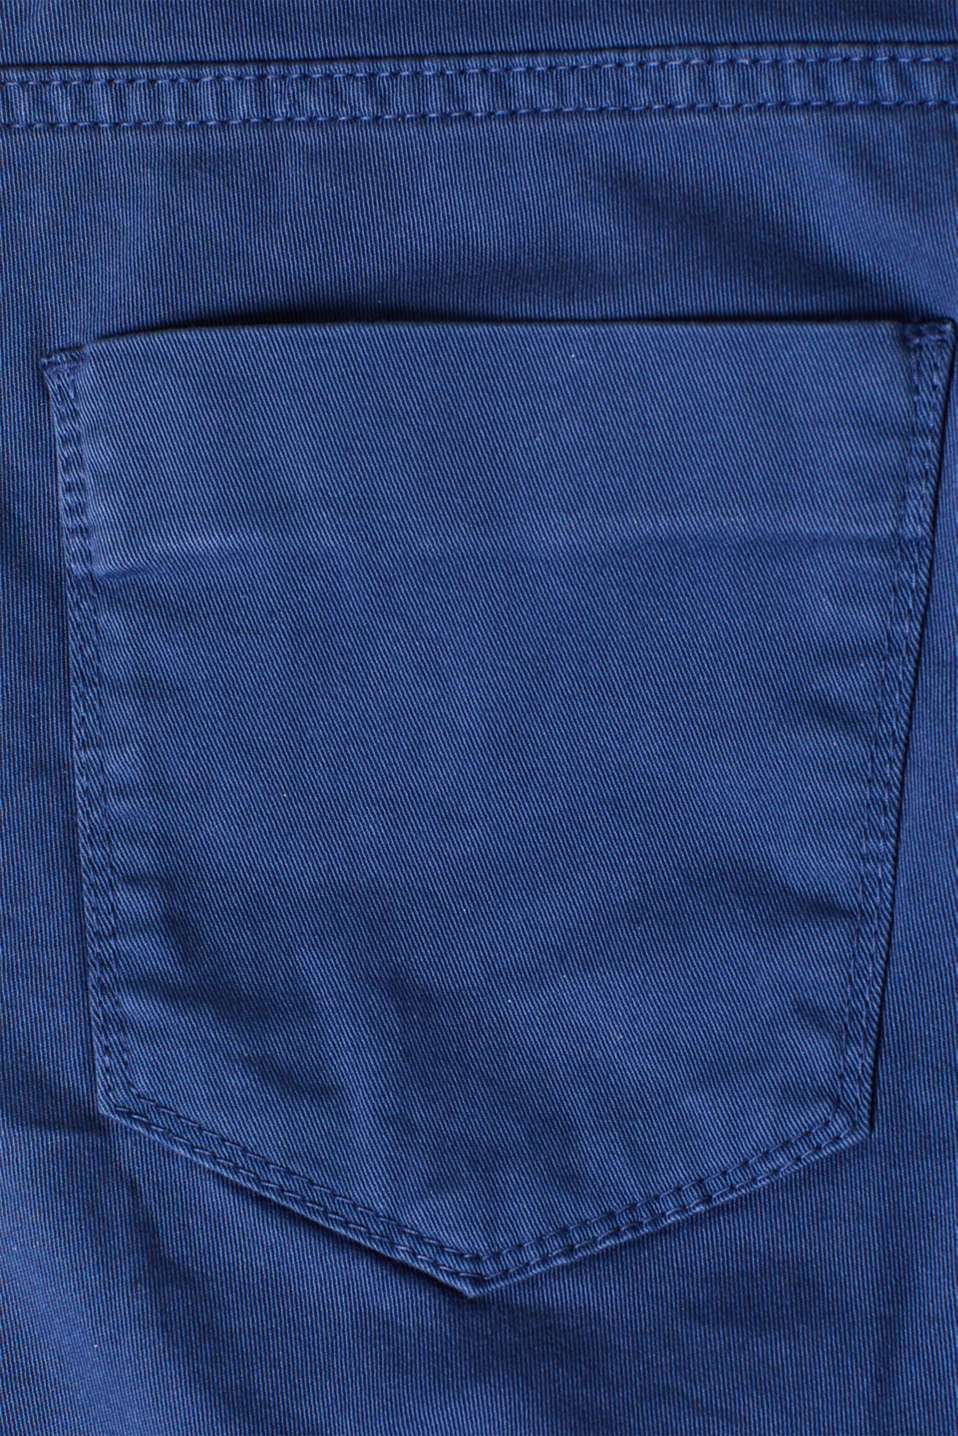 Chino shorts with an under-bump waistband, LCDARK BLUE, detail image number 1